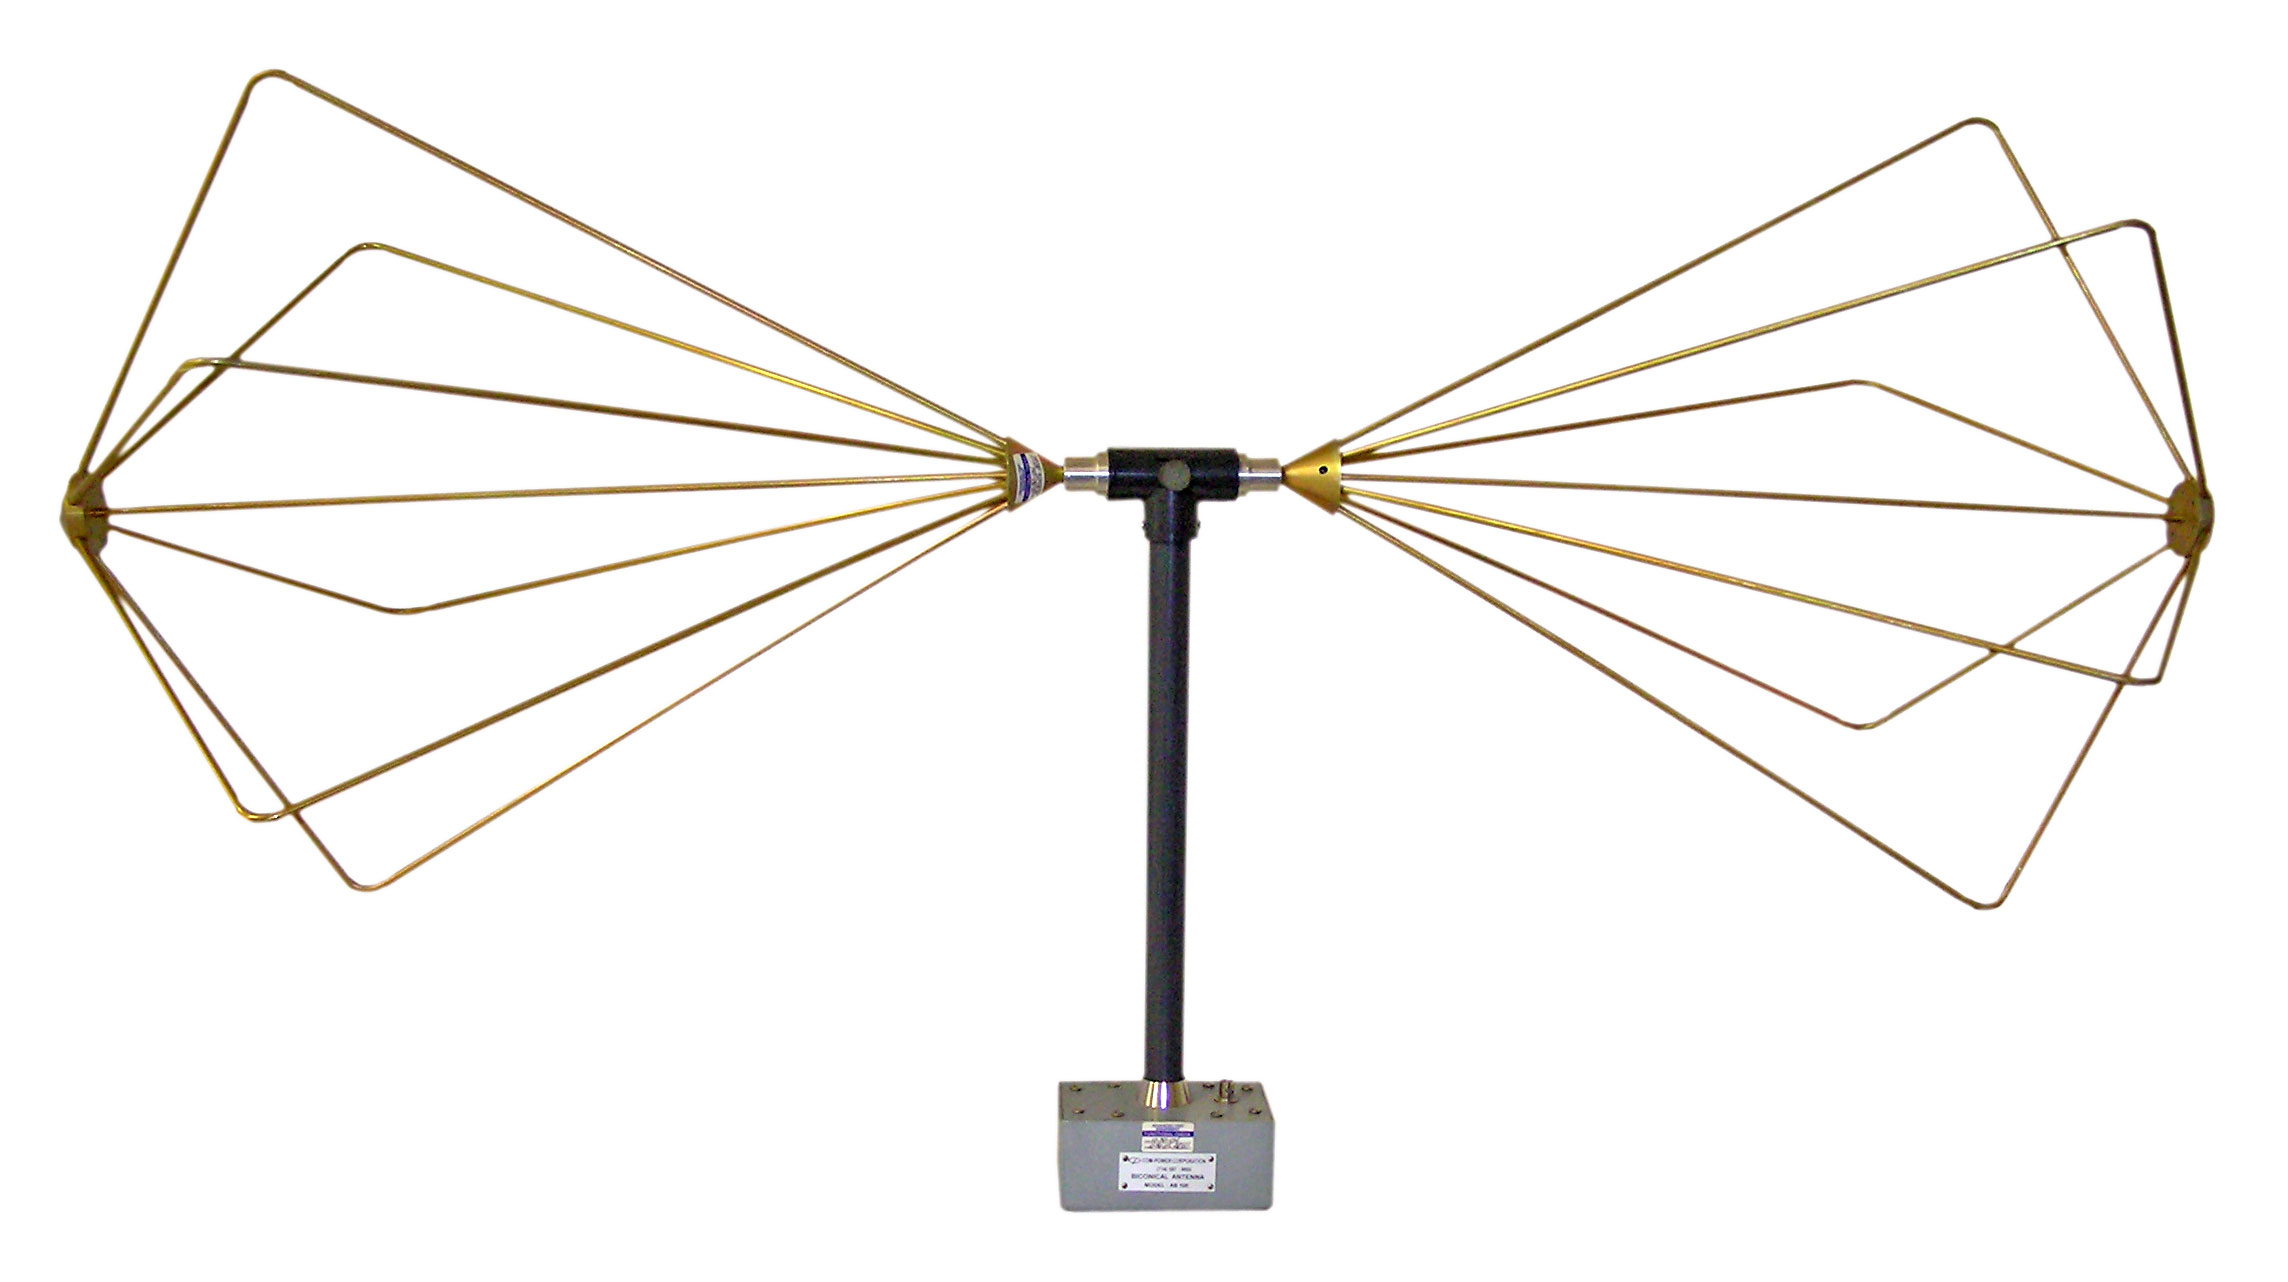 Com-Power AB-900 Wide Band Biconical Antenna, 30 MHz - 300 MHz